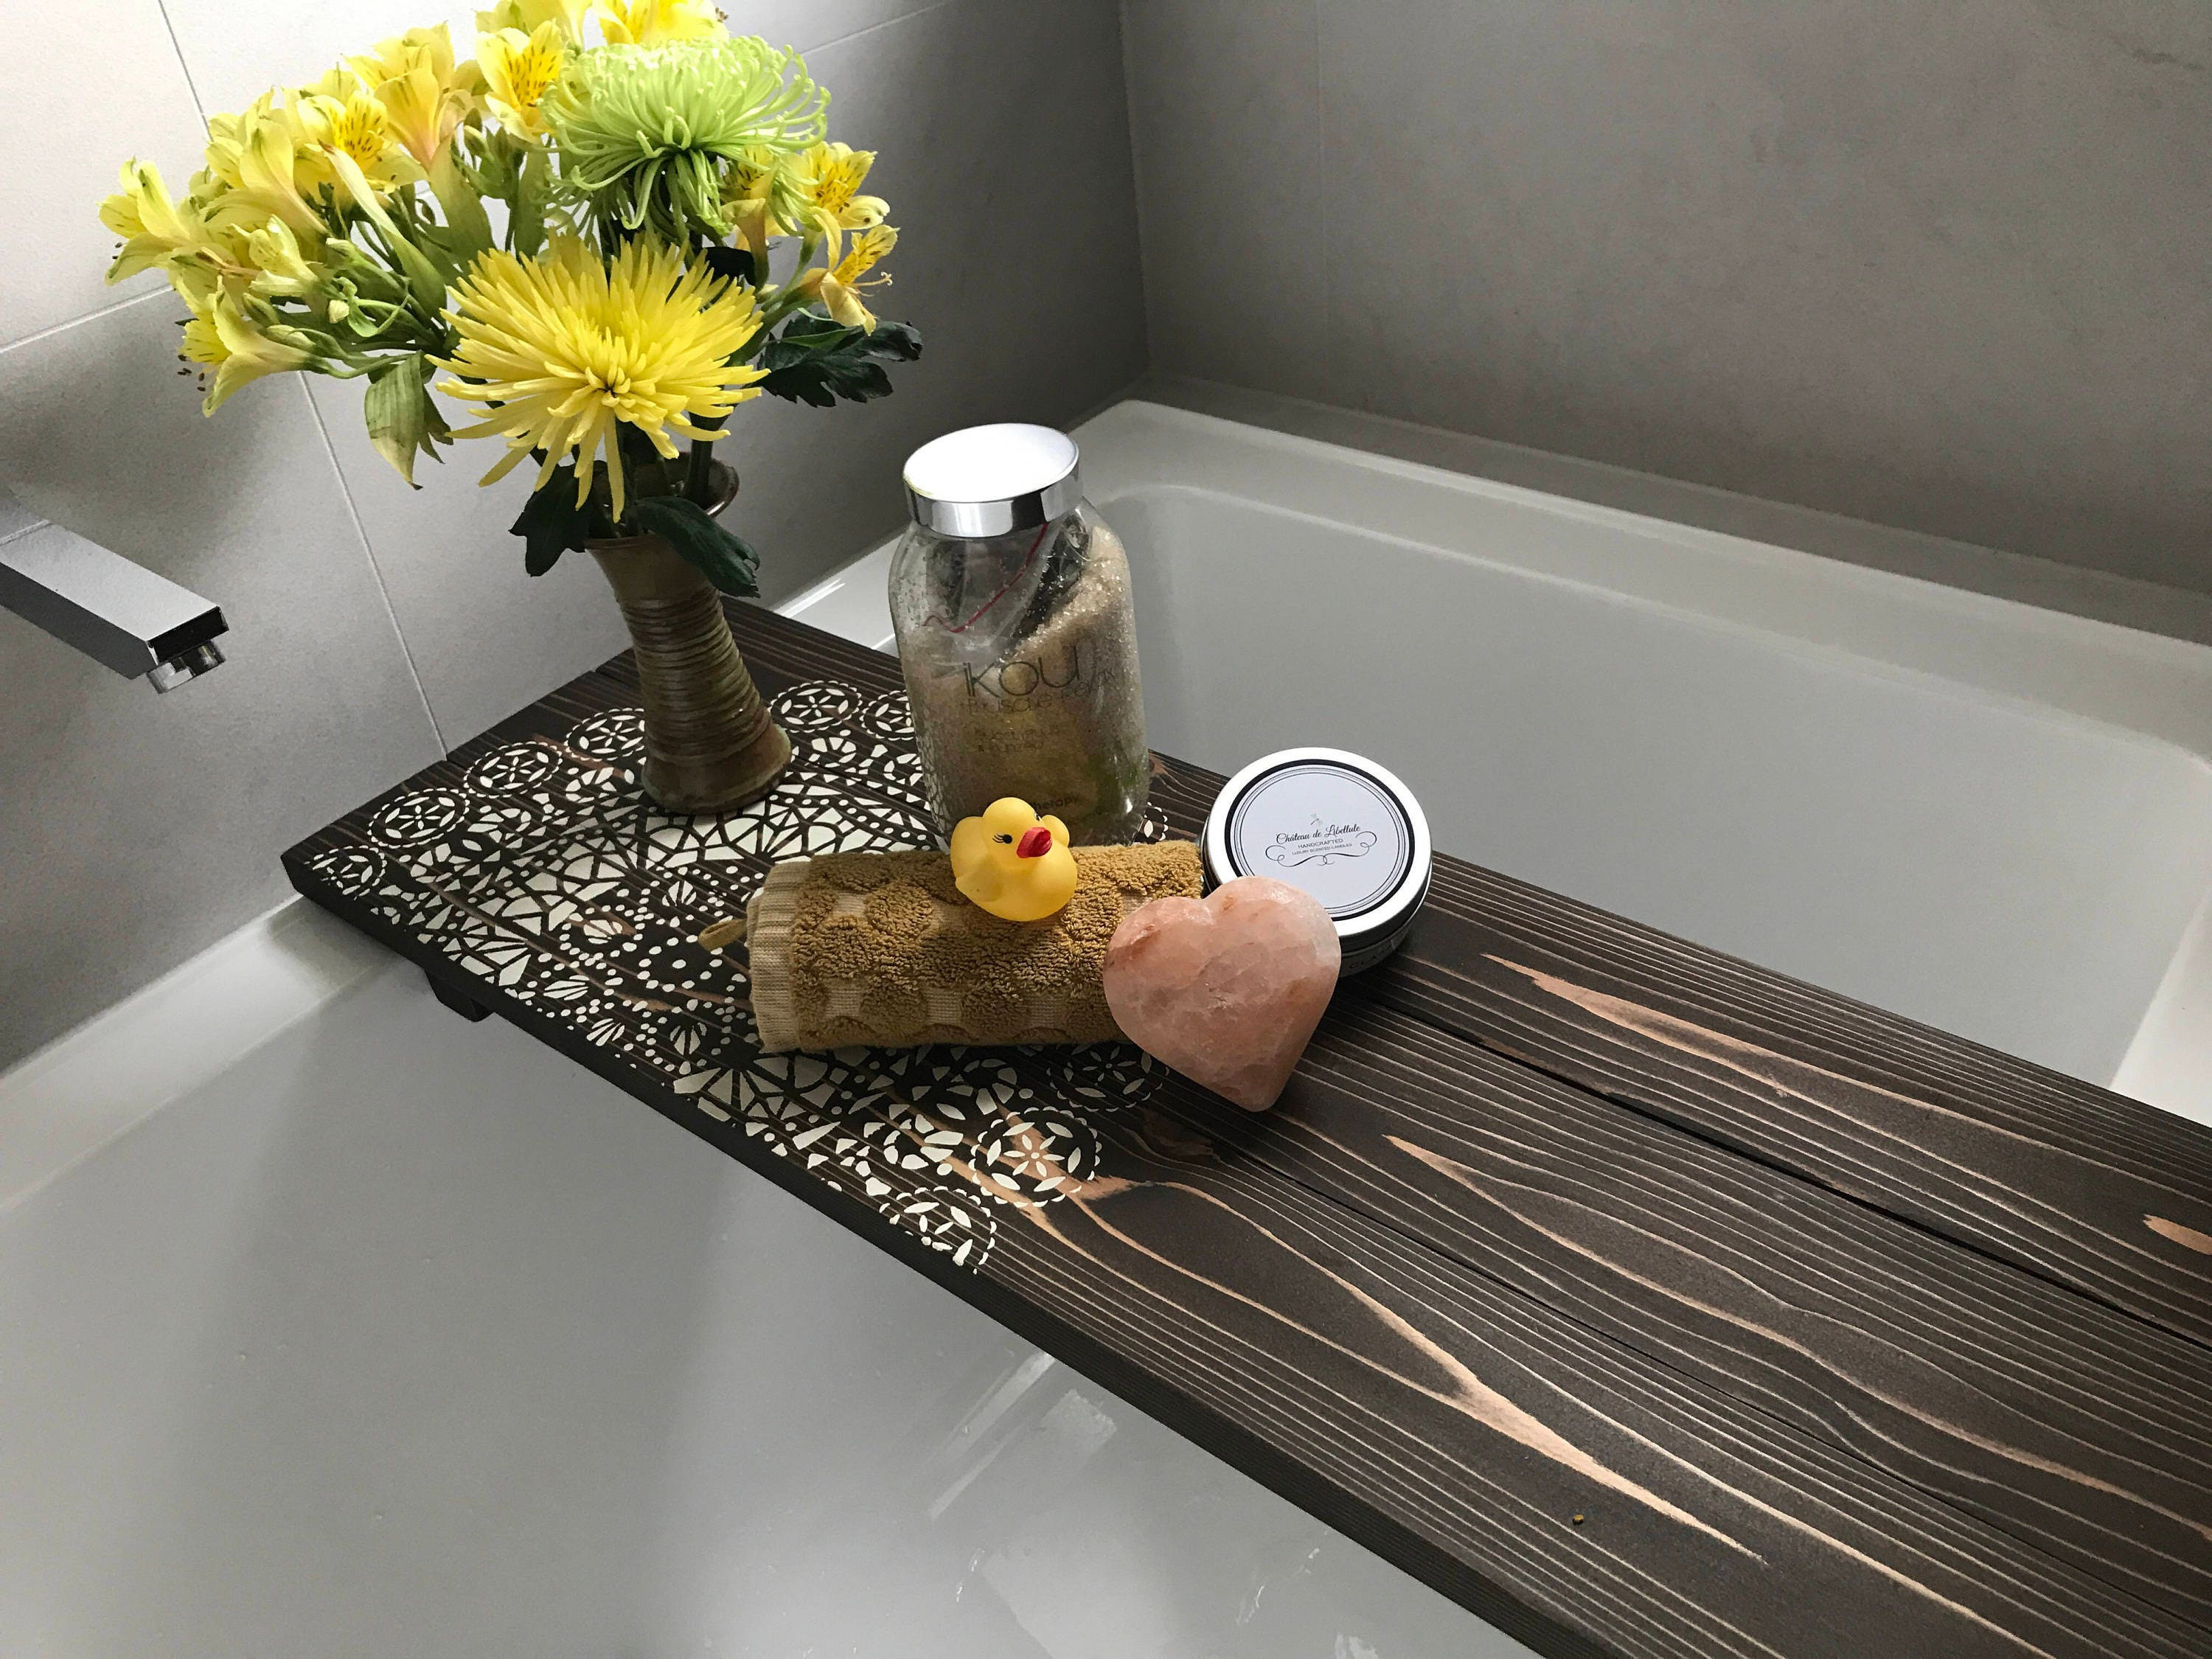 unhappy home me accessorizing this area refresh i bath how caddy remodeled with our a bathtub tray for of little bathroom functioning dsc tips because tub master when started became we my was holliday